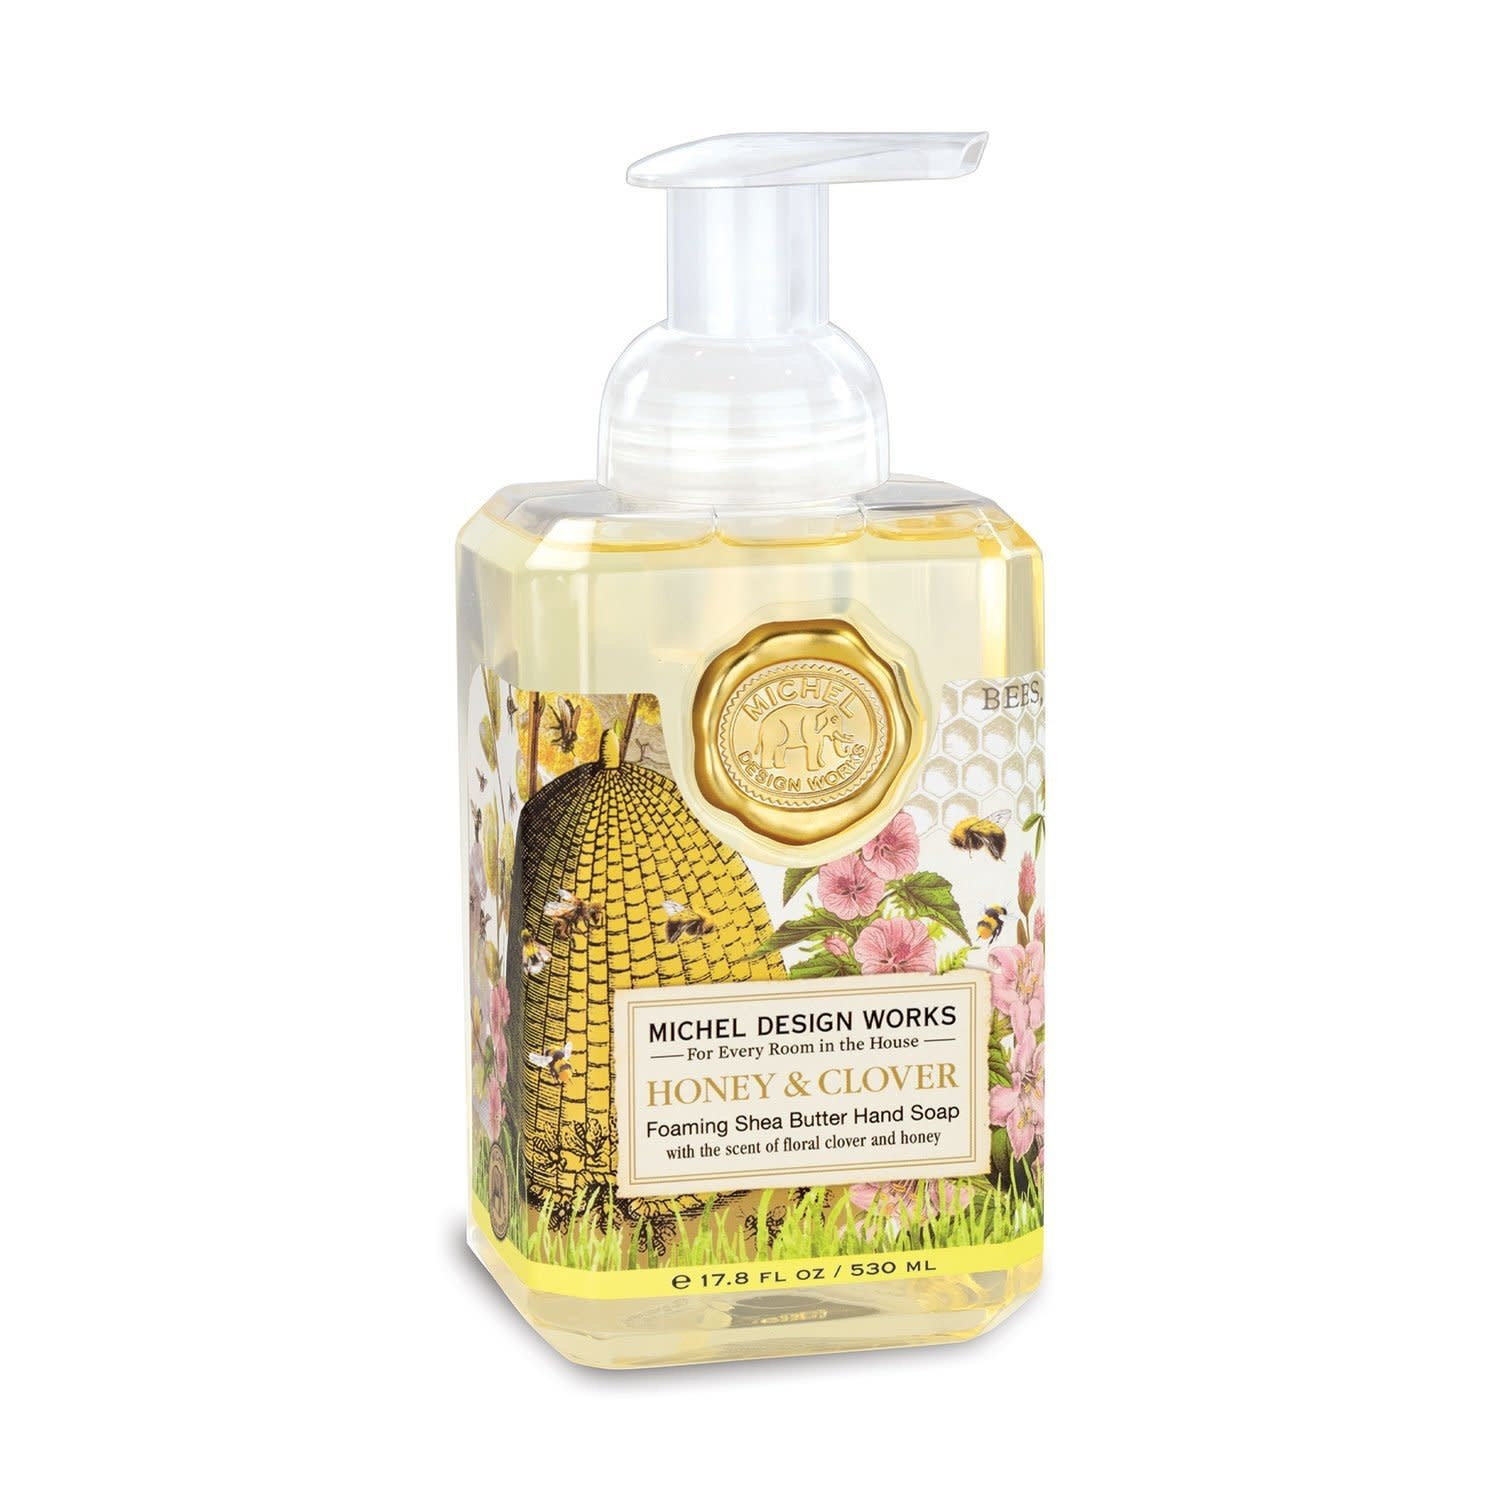 Michel Design Works Honey & Clover Foamer Soap